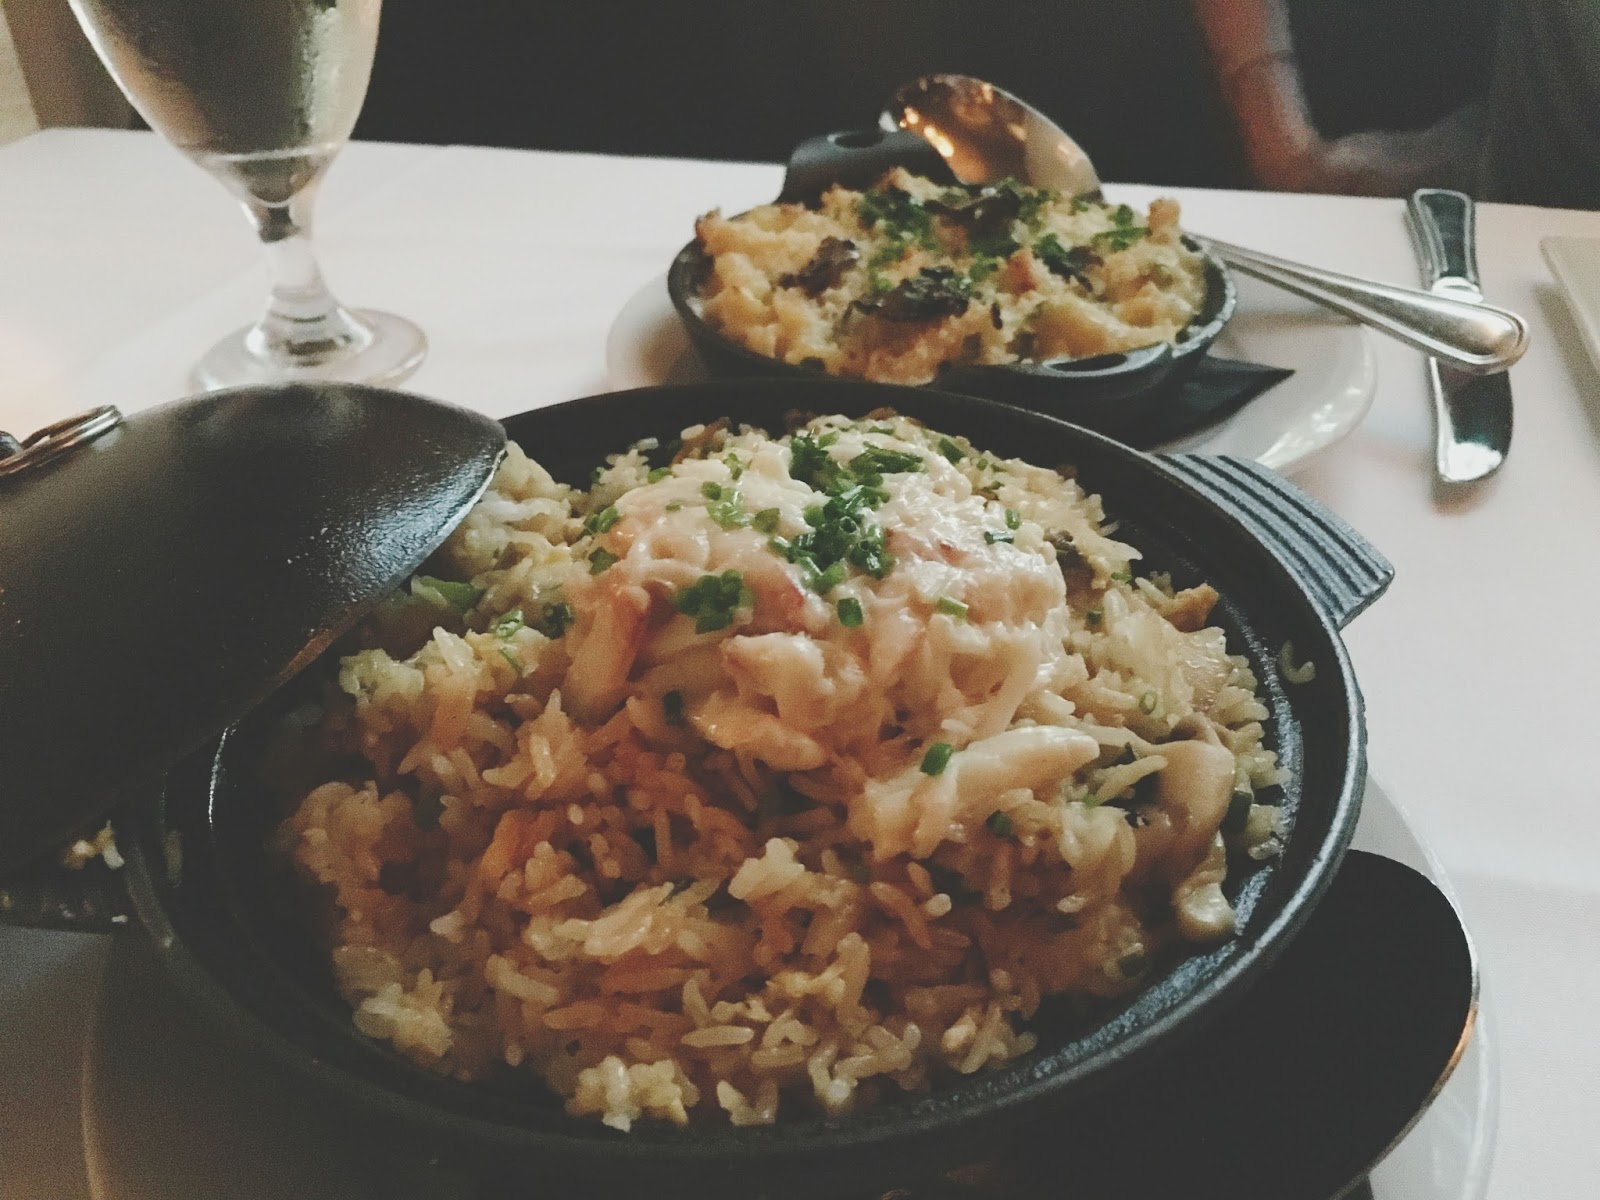 crab fried rice at Eddie V's - A restaurant in Houston, Texas